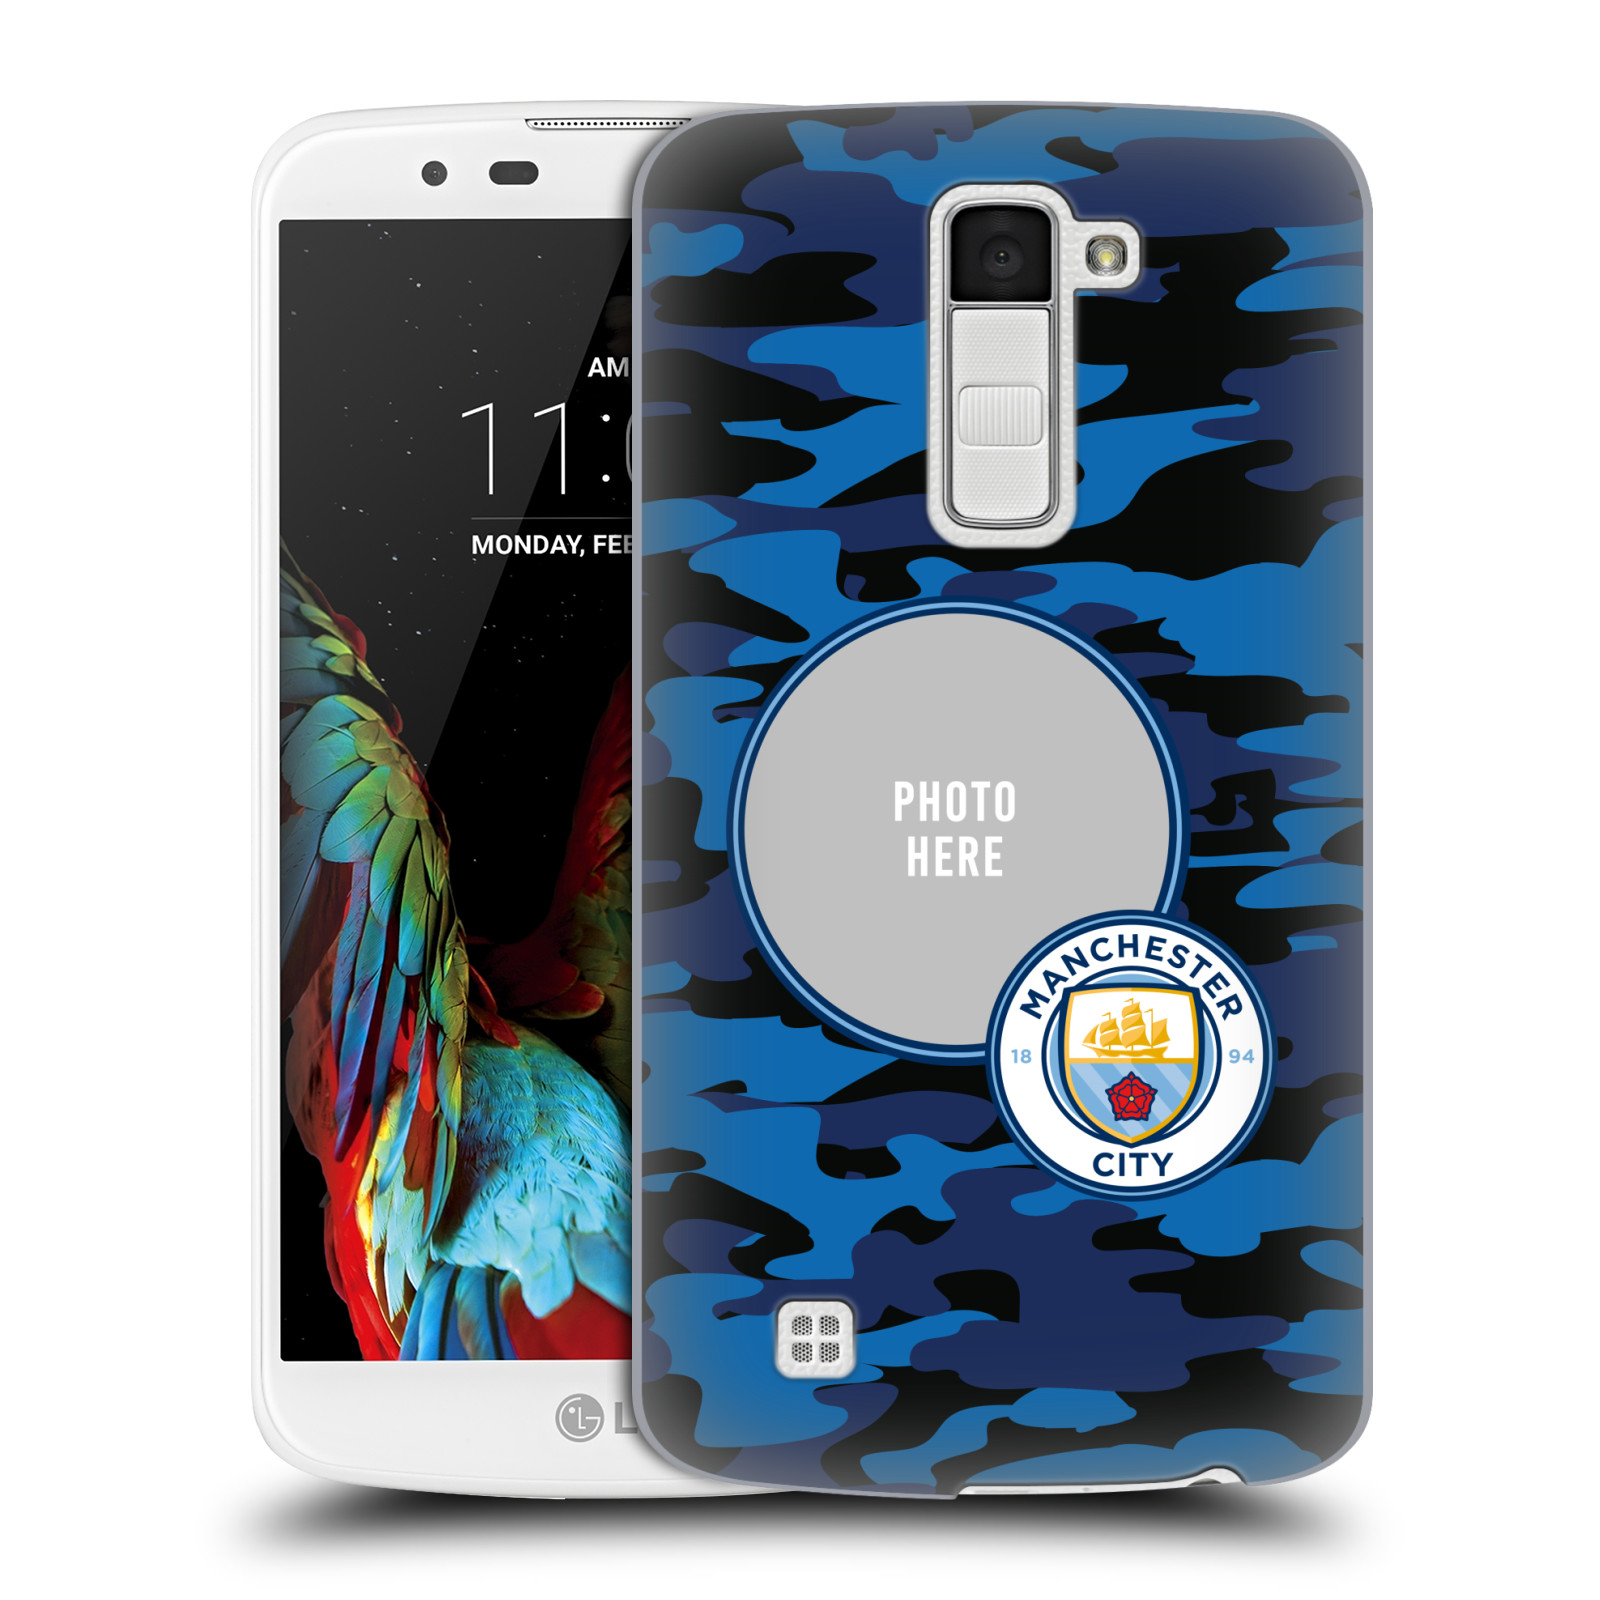 PERSONALISED-MANCHESTER-CITY-MAN-CITY-FC-2017-18-LOGO-amp-KIT-CASE-FOR-LG-PHONES-3